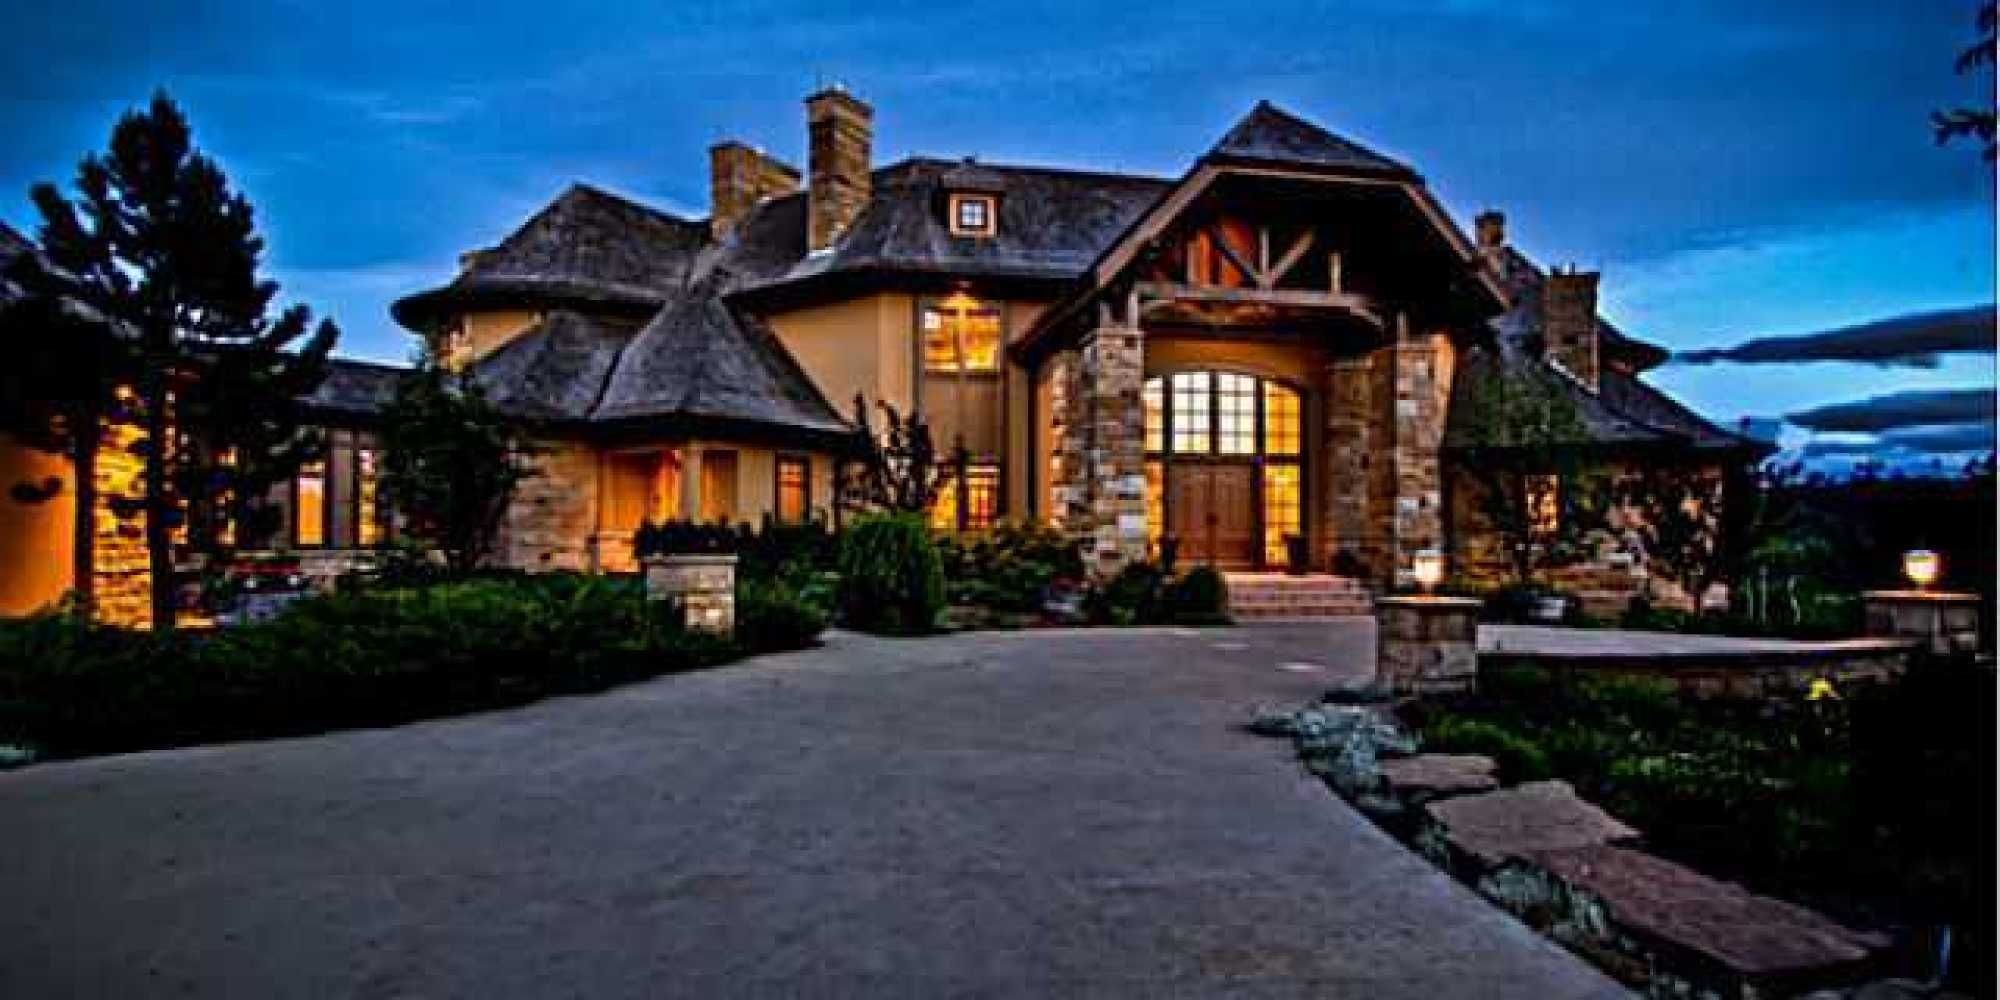 Cool Big House For Ranch Plans Dream Homes In Luxury Country State Designs